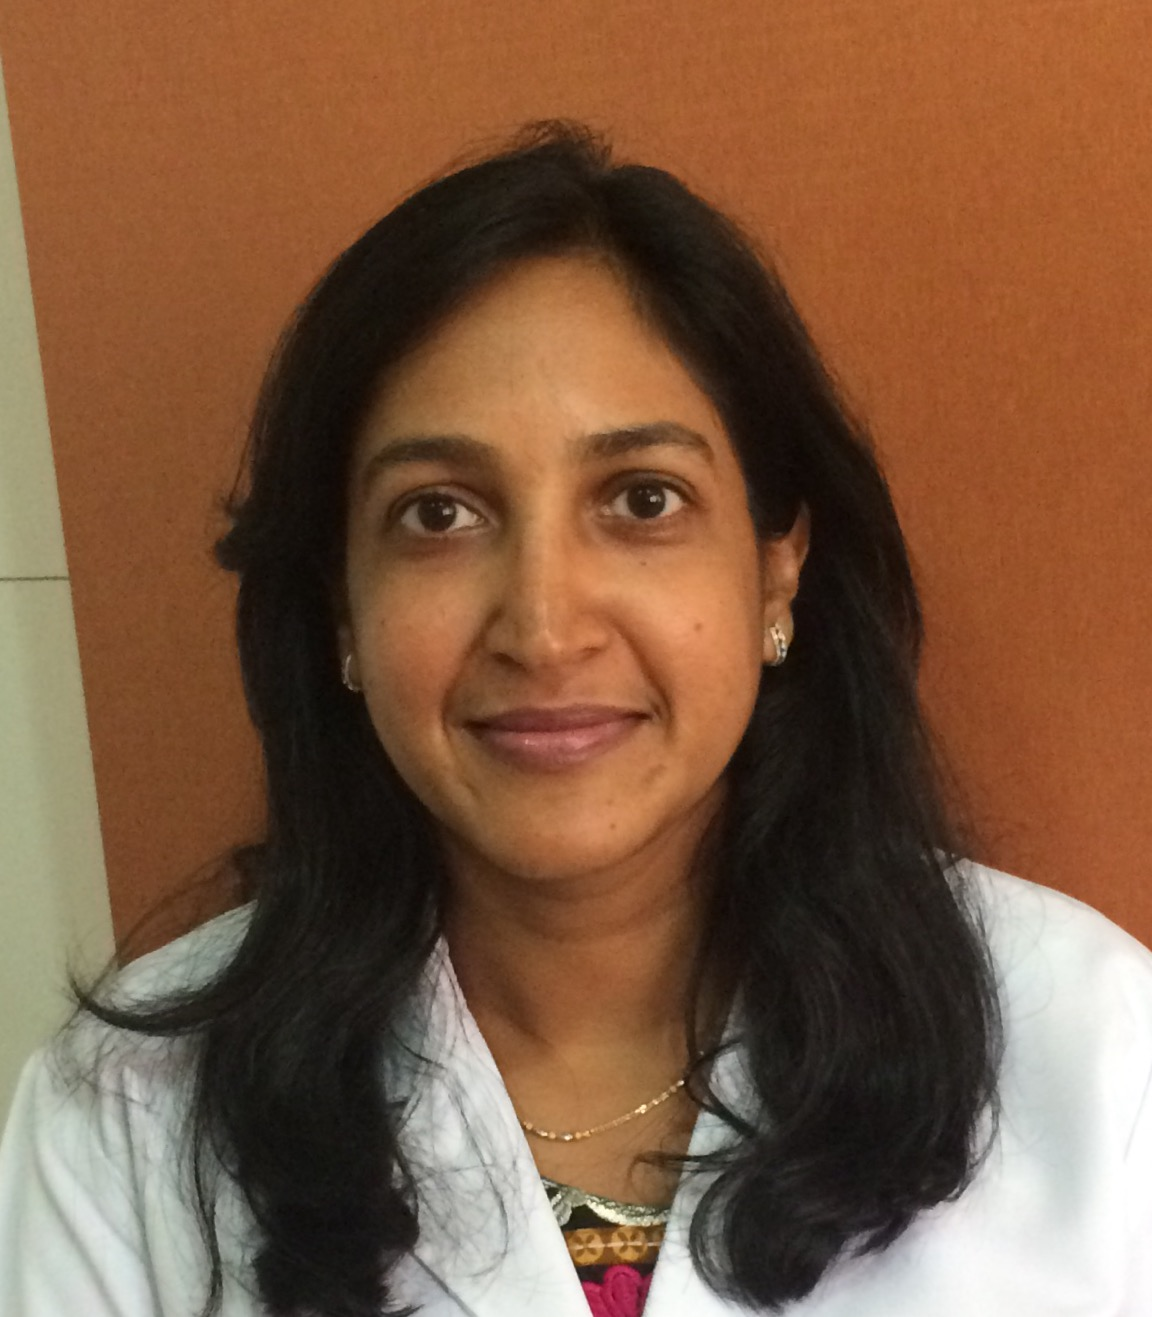 Dr. Ritu K. Sheth - Ear-Nose-Throat (ENT) Specialist